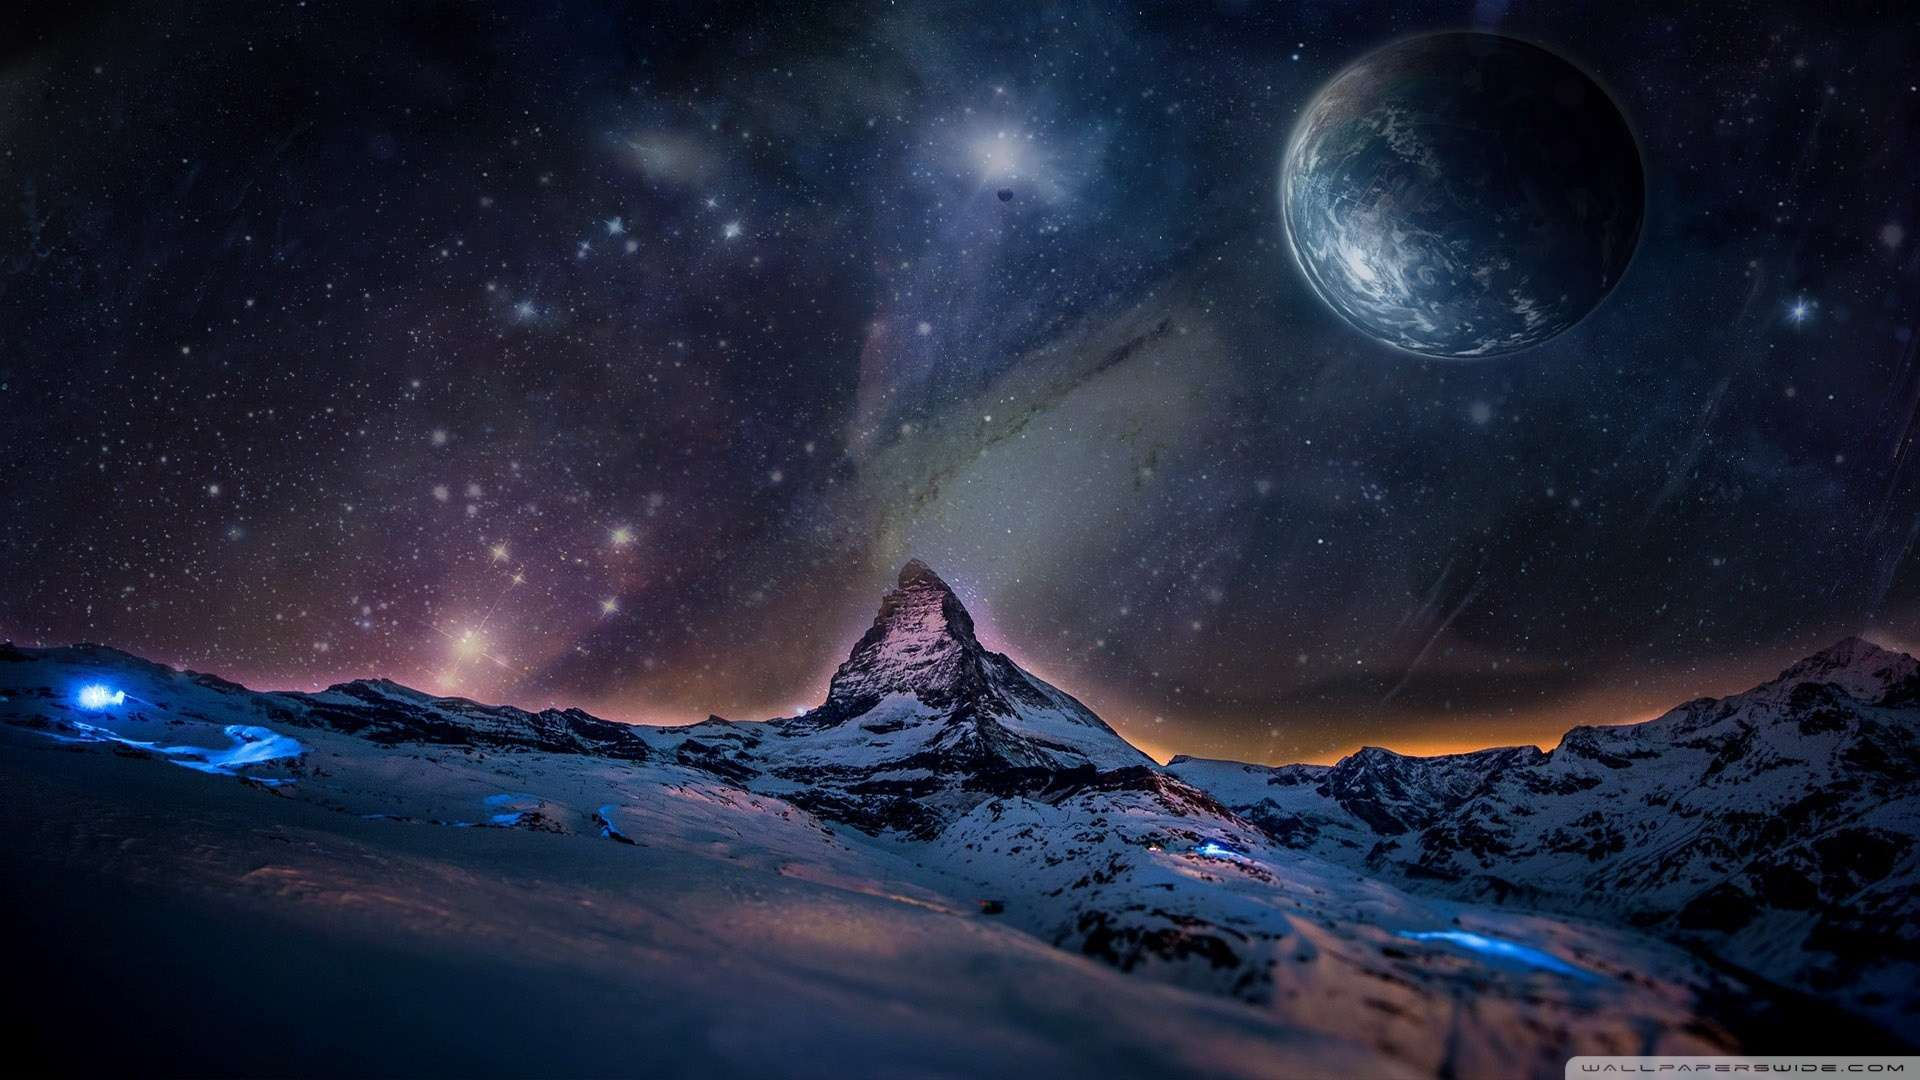 Hd Wallpapers 1080P Space   Desktop Backgrounds 1920x1080